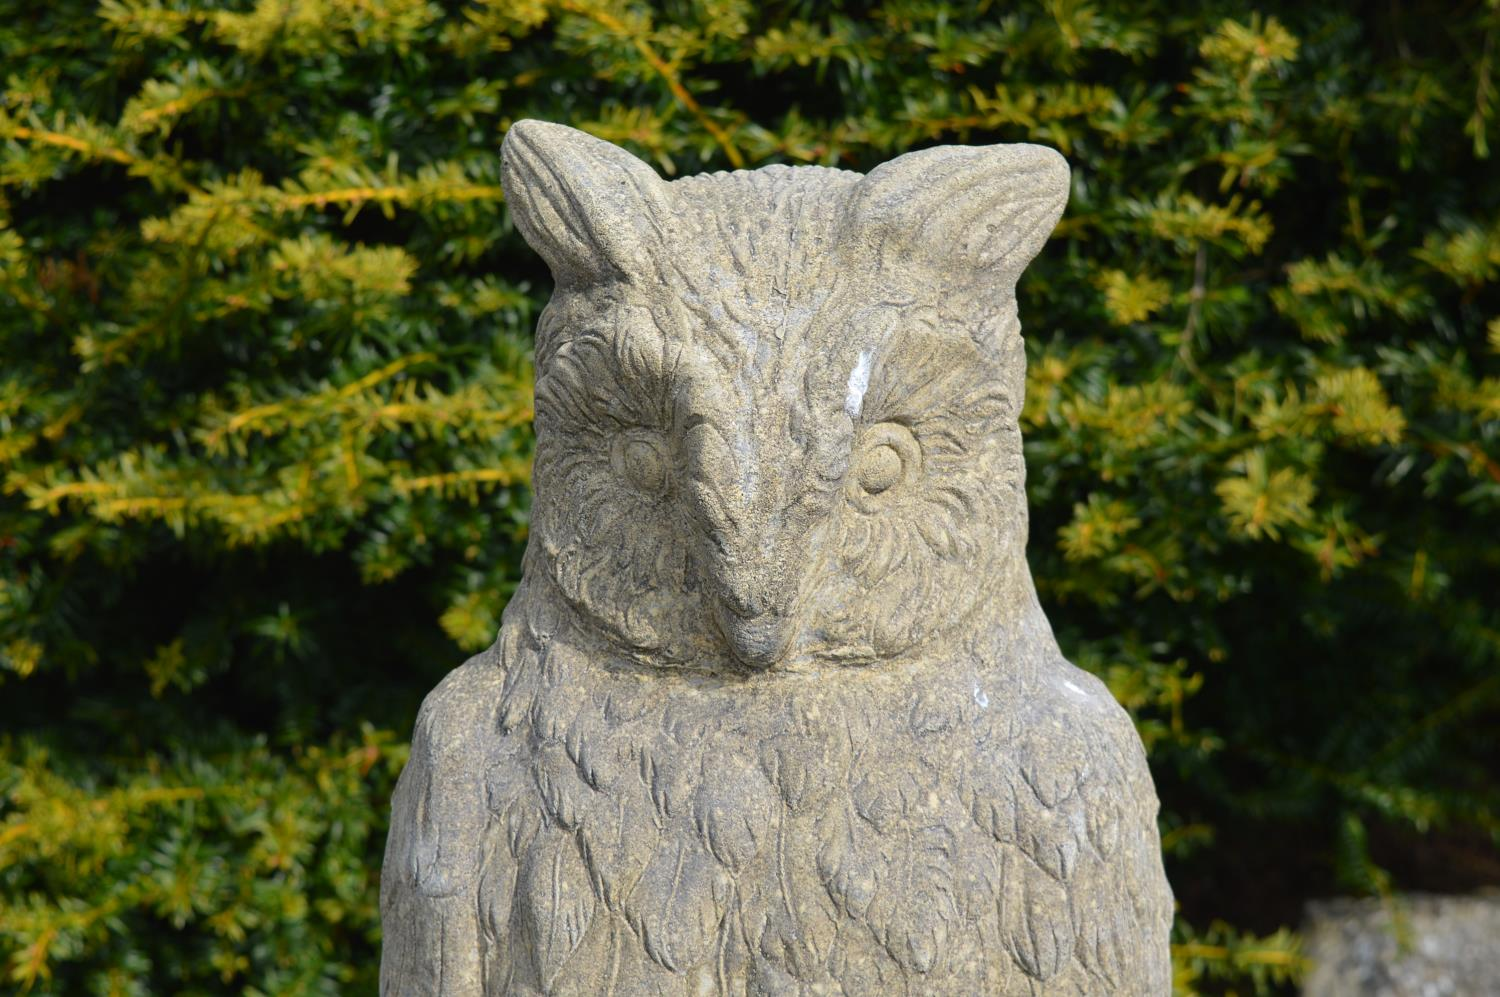 Stone model of an owl 30W 70H - Image 2 of 2